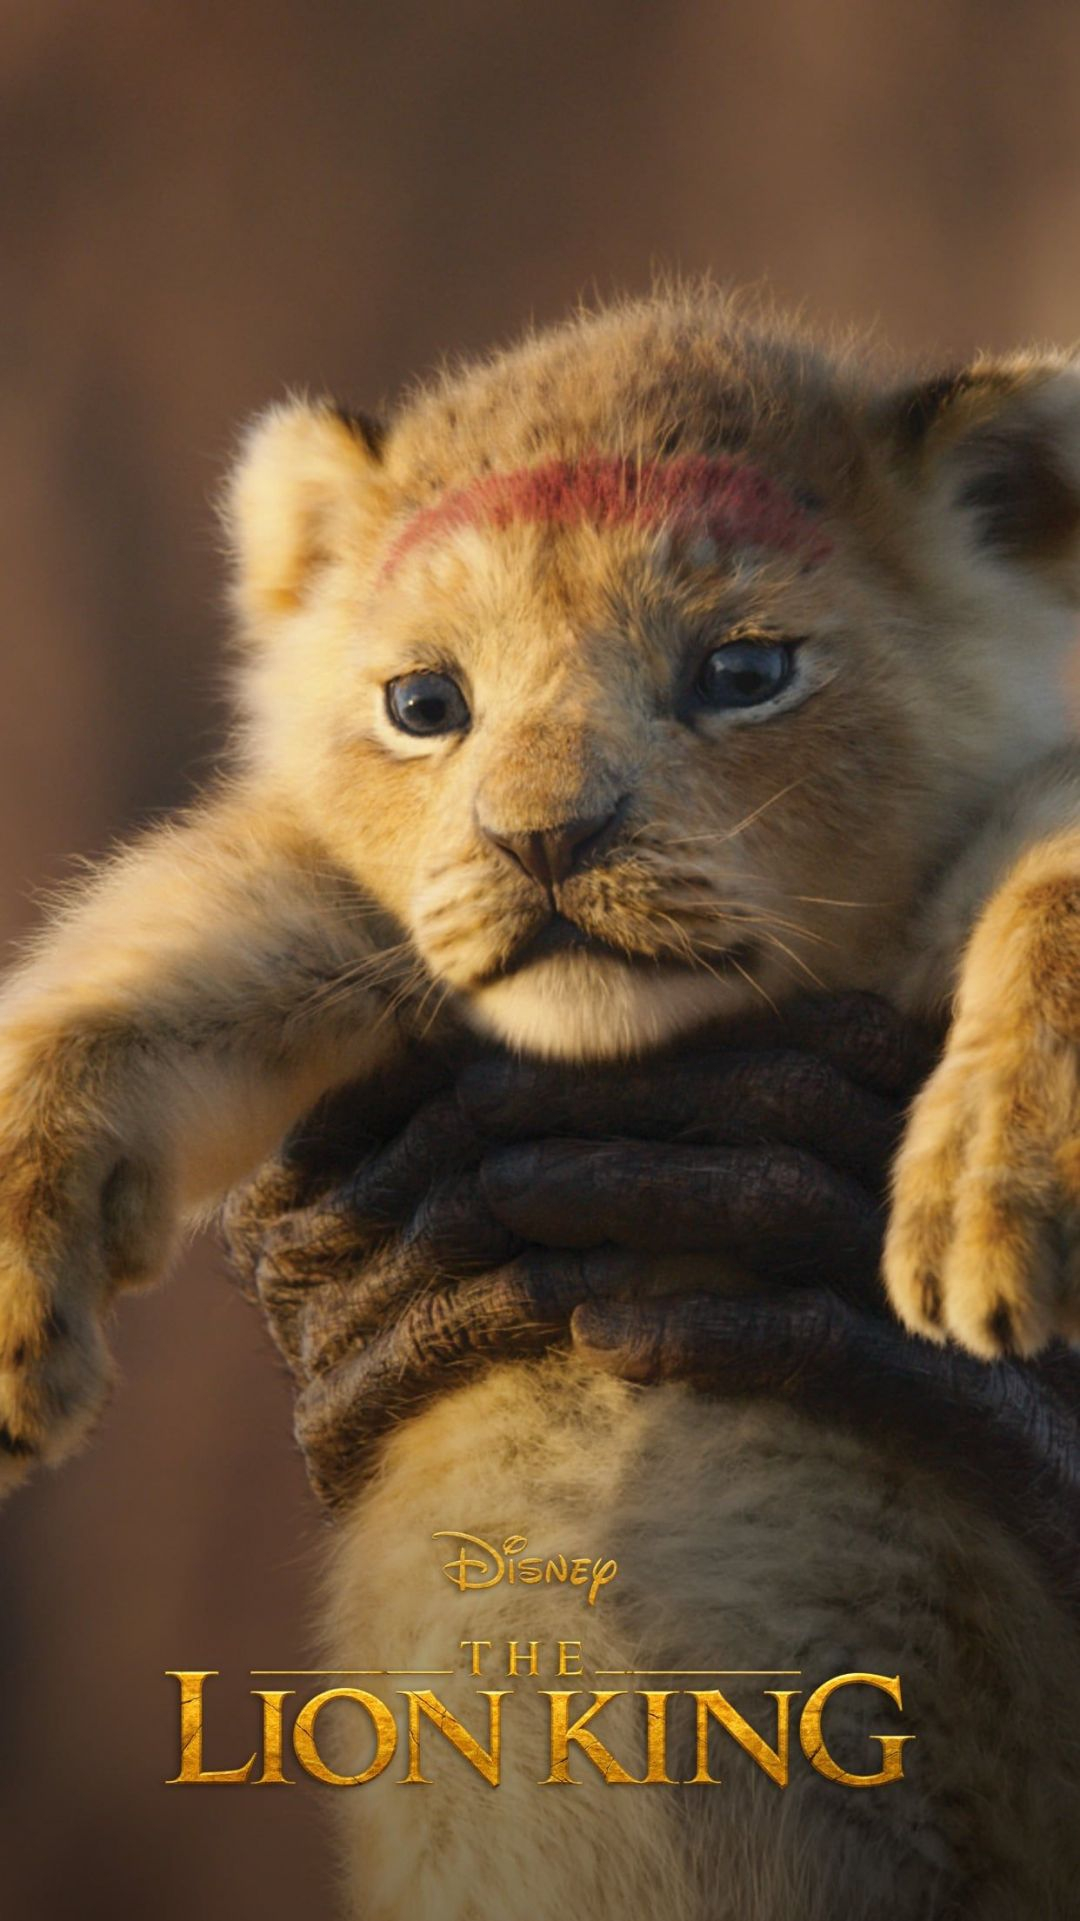 The Lion King - Lion King 2019 , HD Wallpaper & Backgrounds